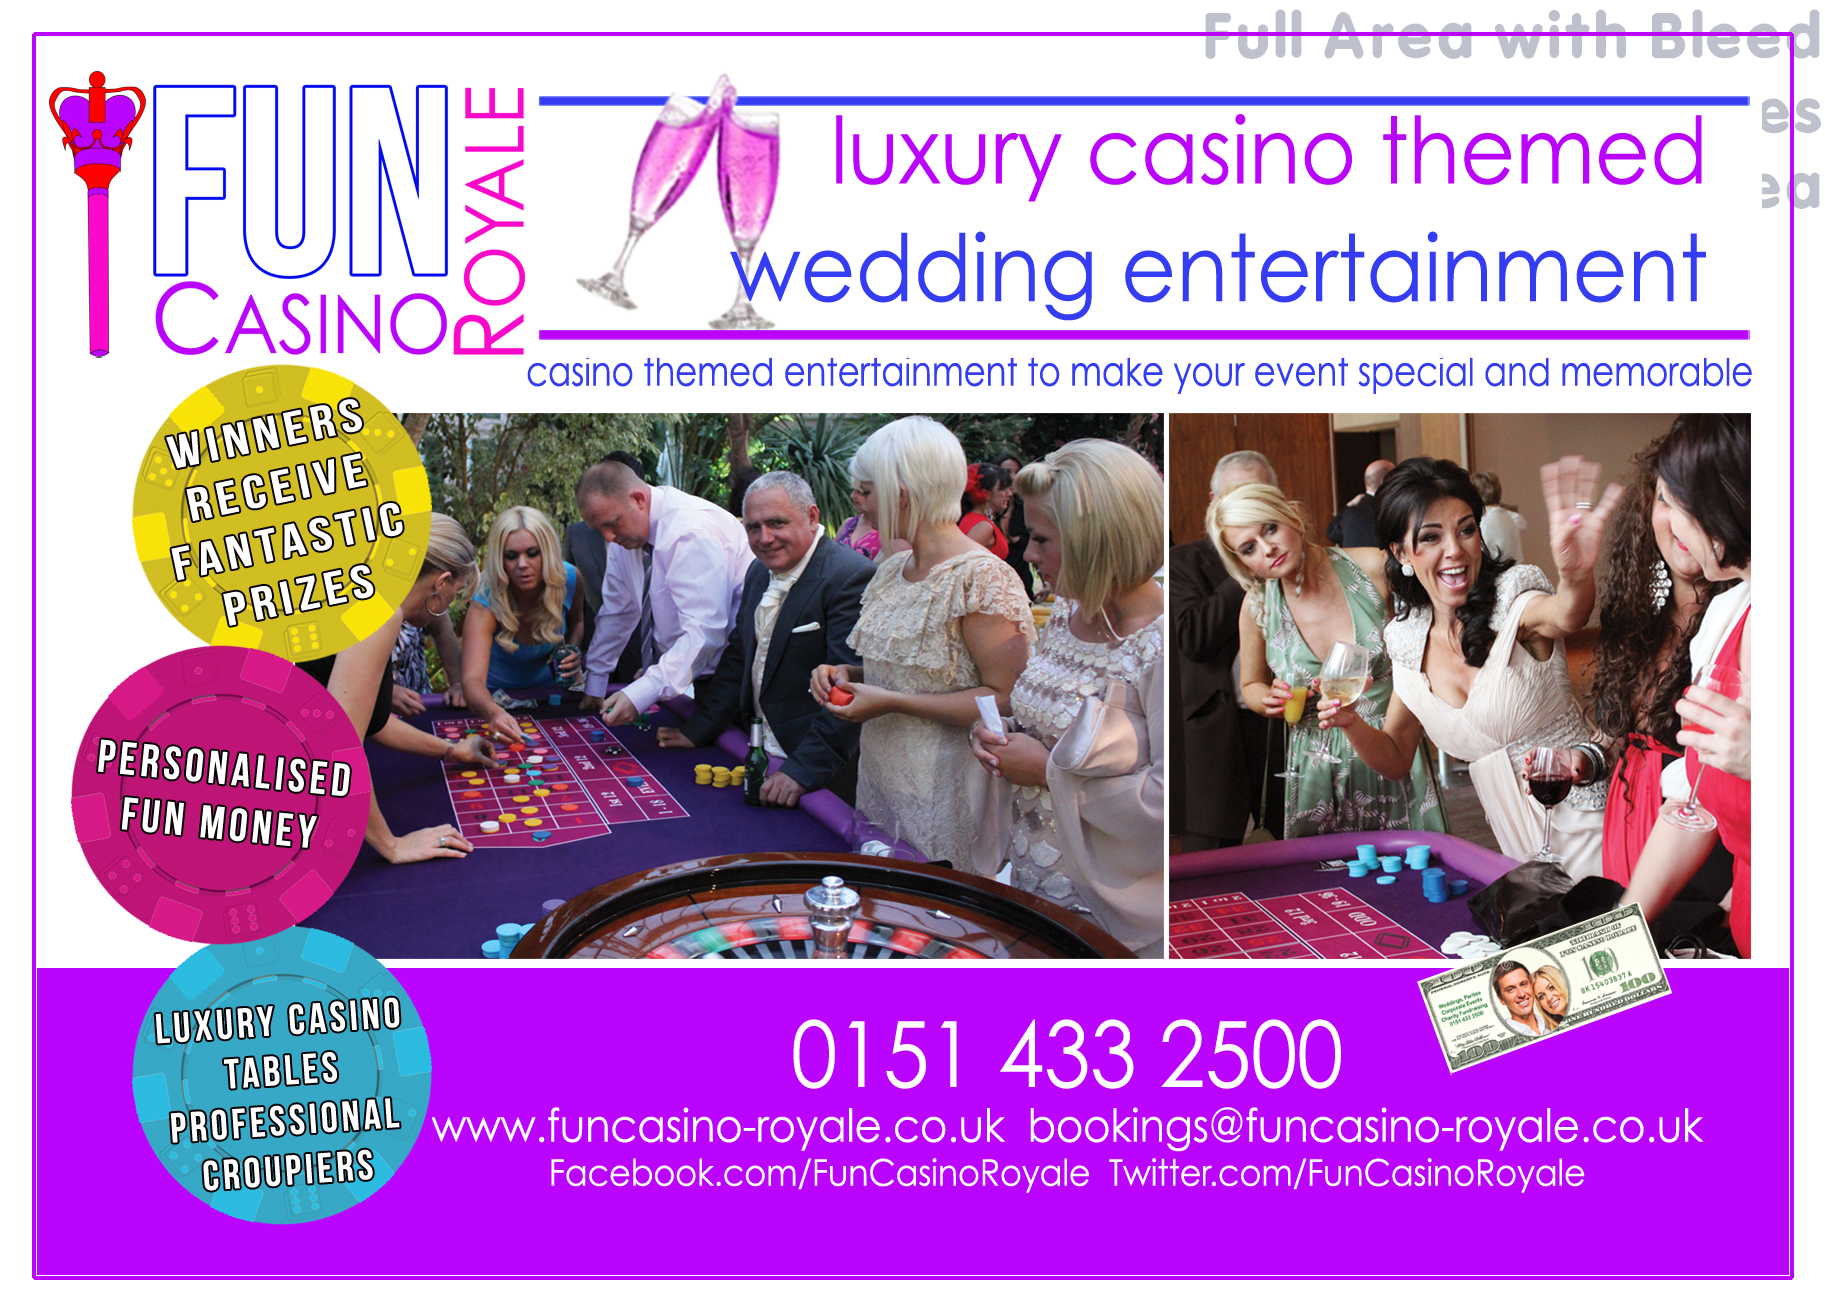 Luxury Casino Tables. We bring the Ultimate Casino Experience to you. Perfect for Weddings, Corporate Events, Parties & Fundraising Charity Events 0151 433 2500